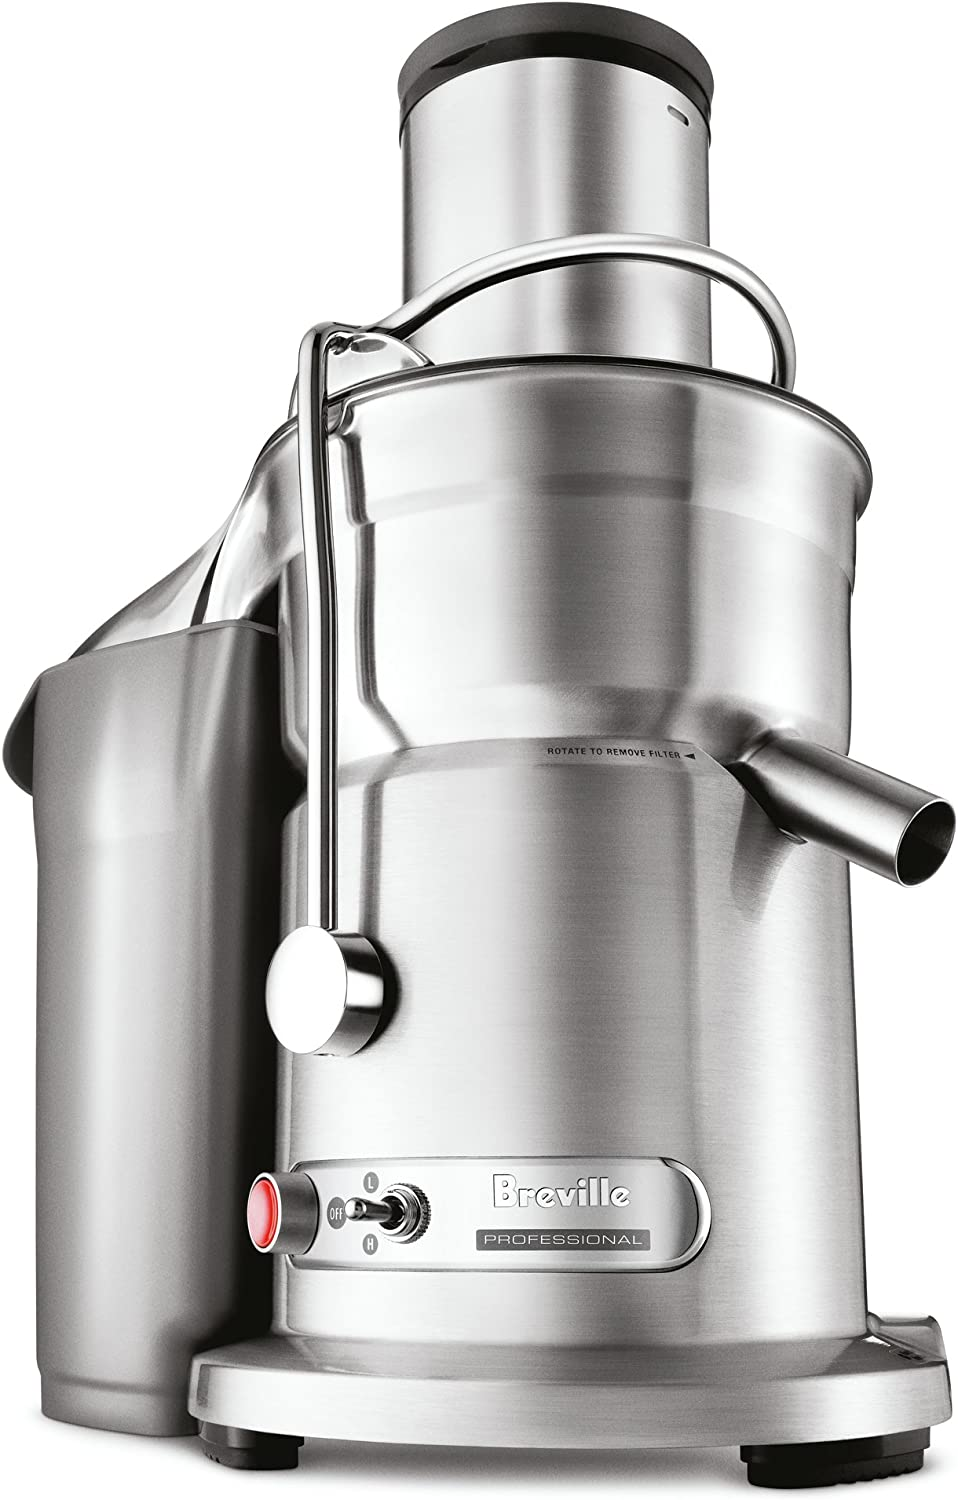 The best Breville juicers 2021: top pick